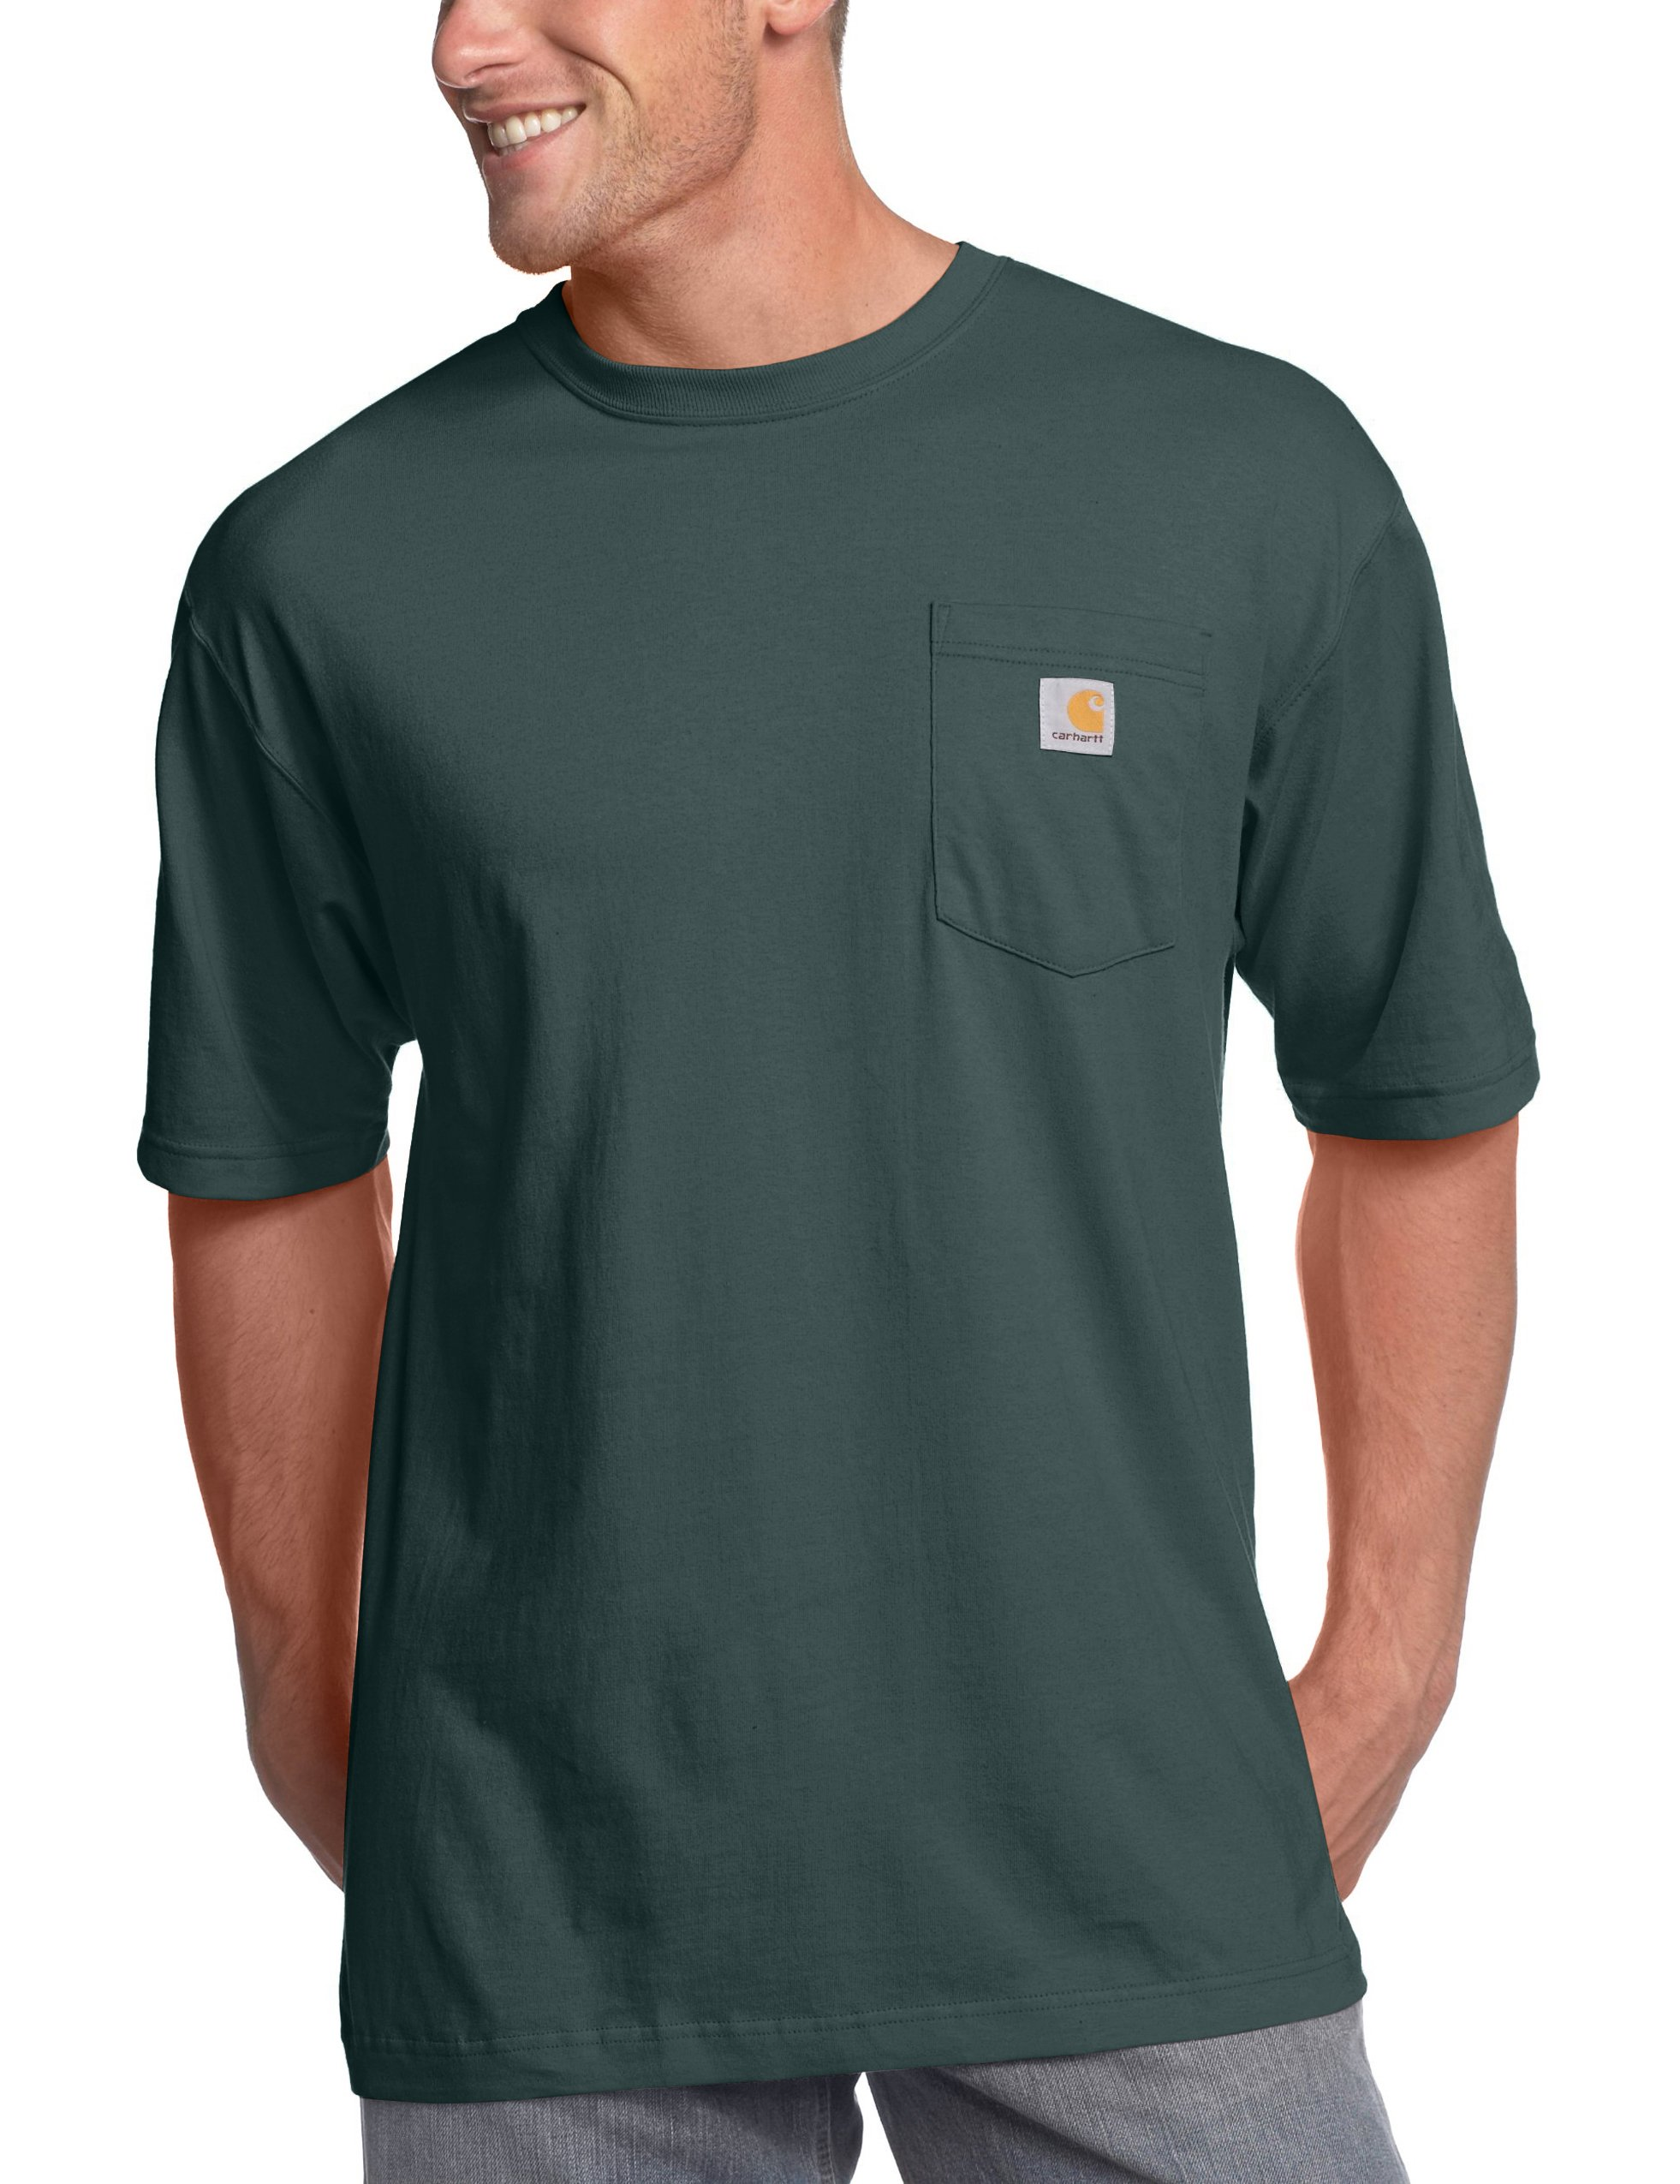 Carhartt Men's Big & Tall Workwear Pocket Short Sleeve T-Shirt Original Fit K87,Hunter Green,Large Tall by Carhartt (Image #1)